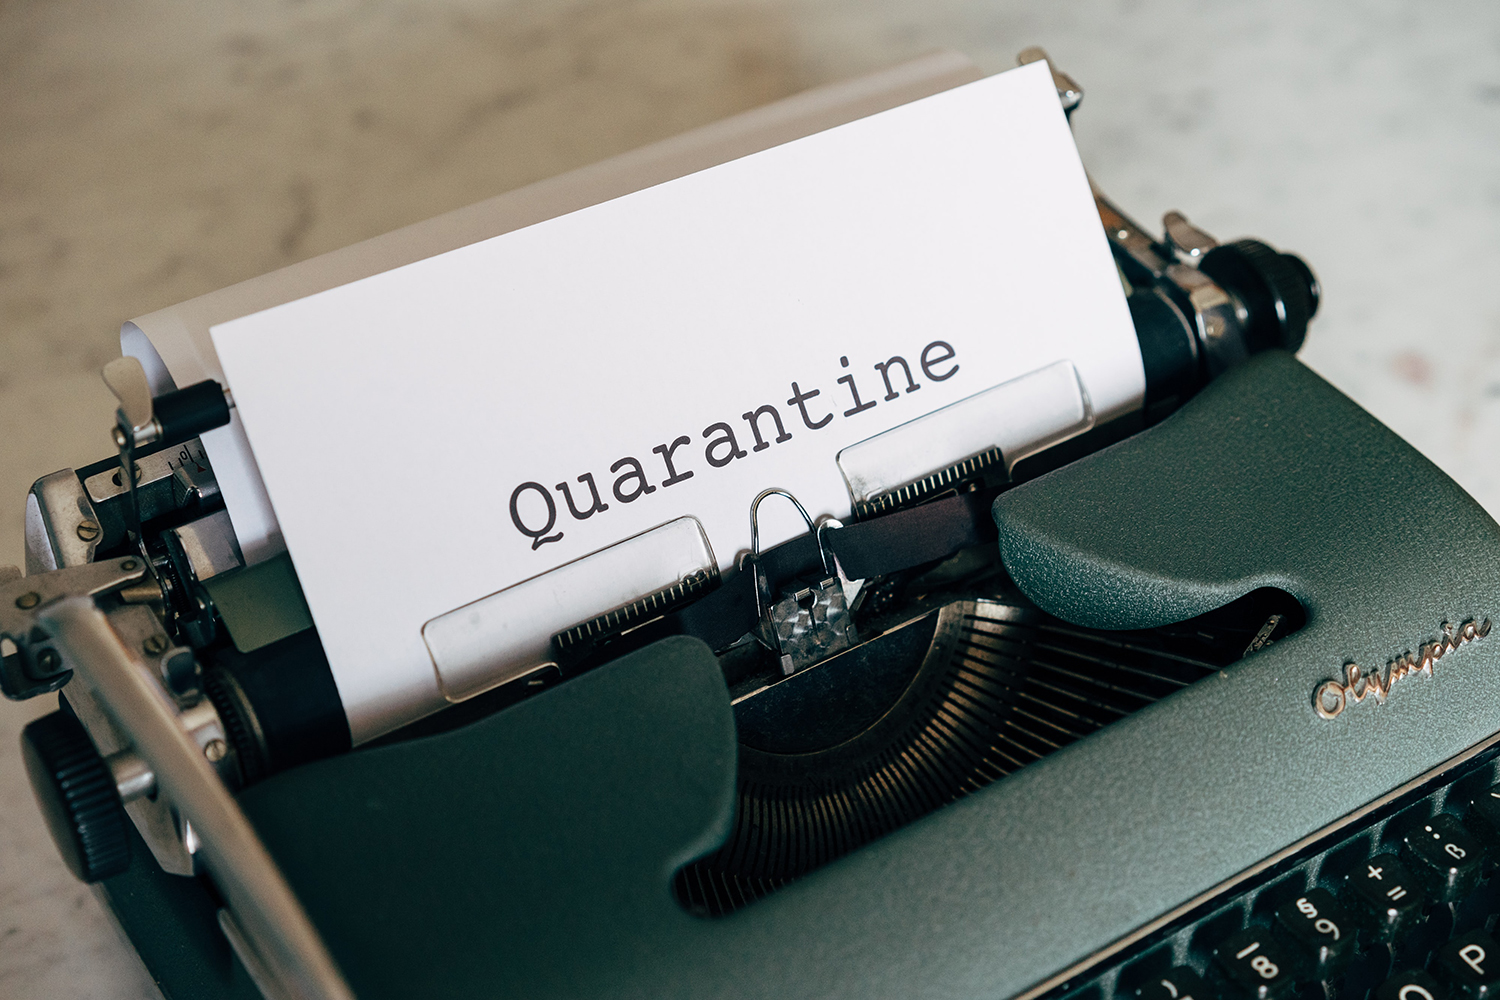 quarantine-unsplash.jpg